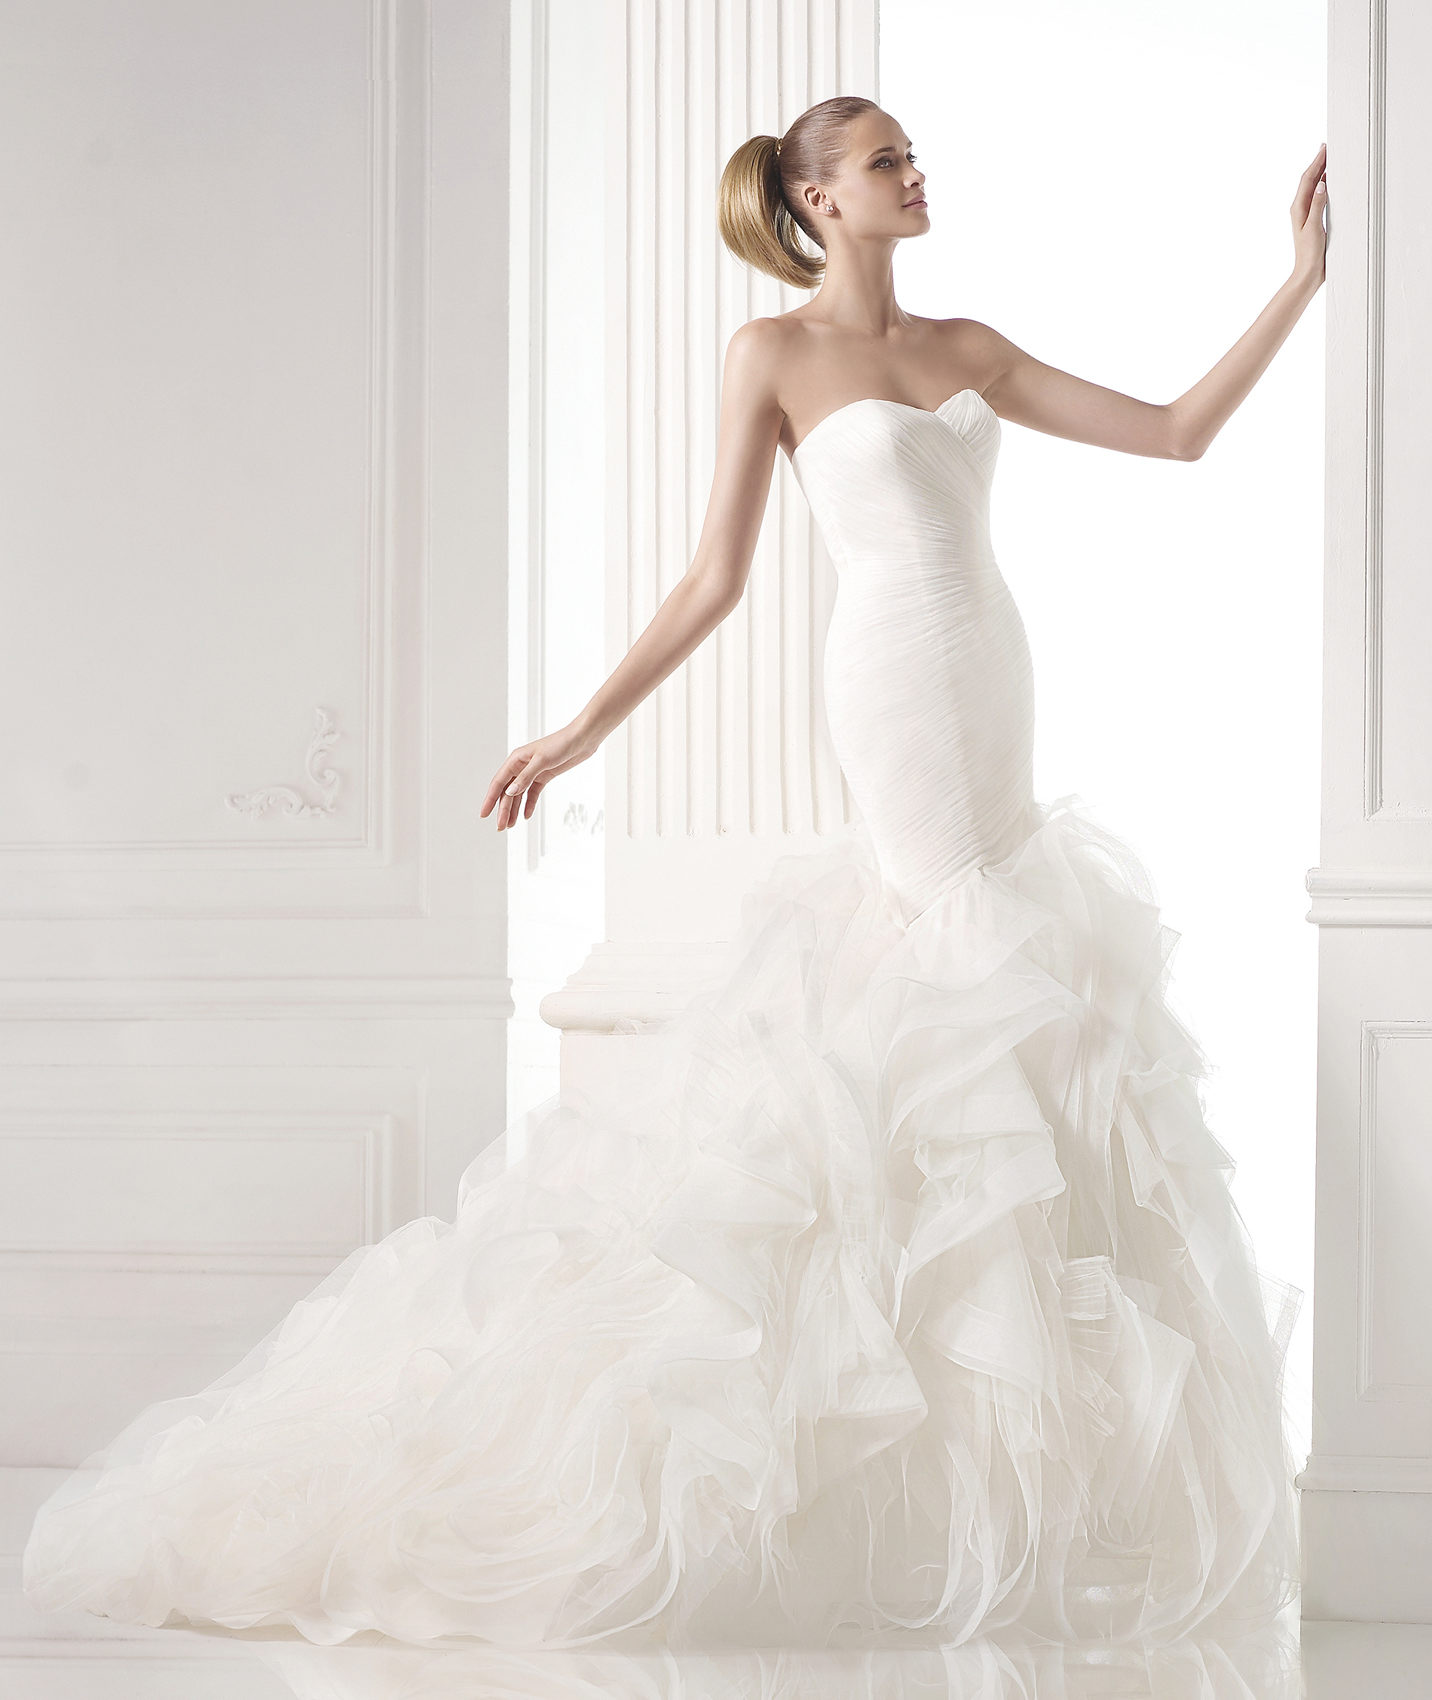 Wedding Gowns Accessories: Precious Memories Bridal Shop